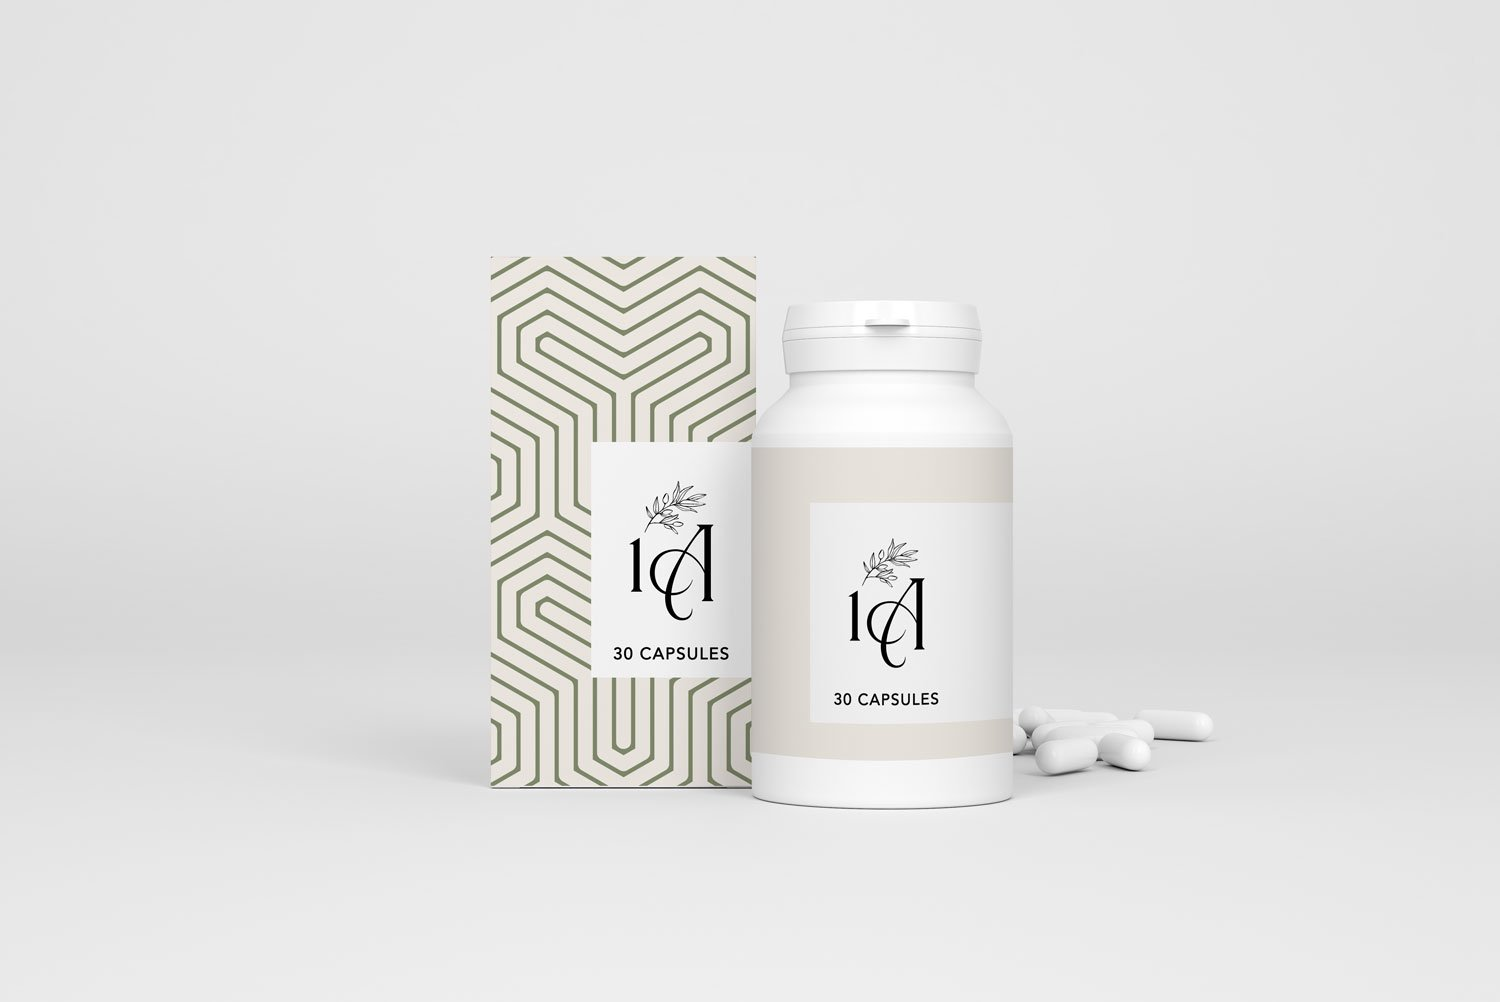 Nutraceuticals_package_design